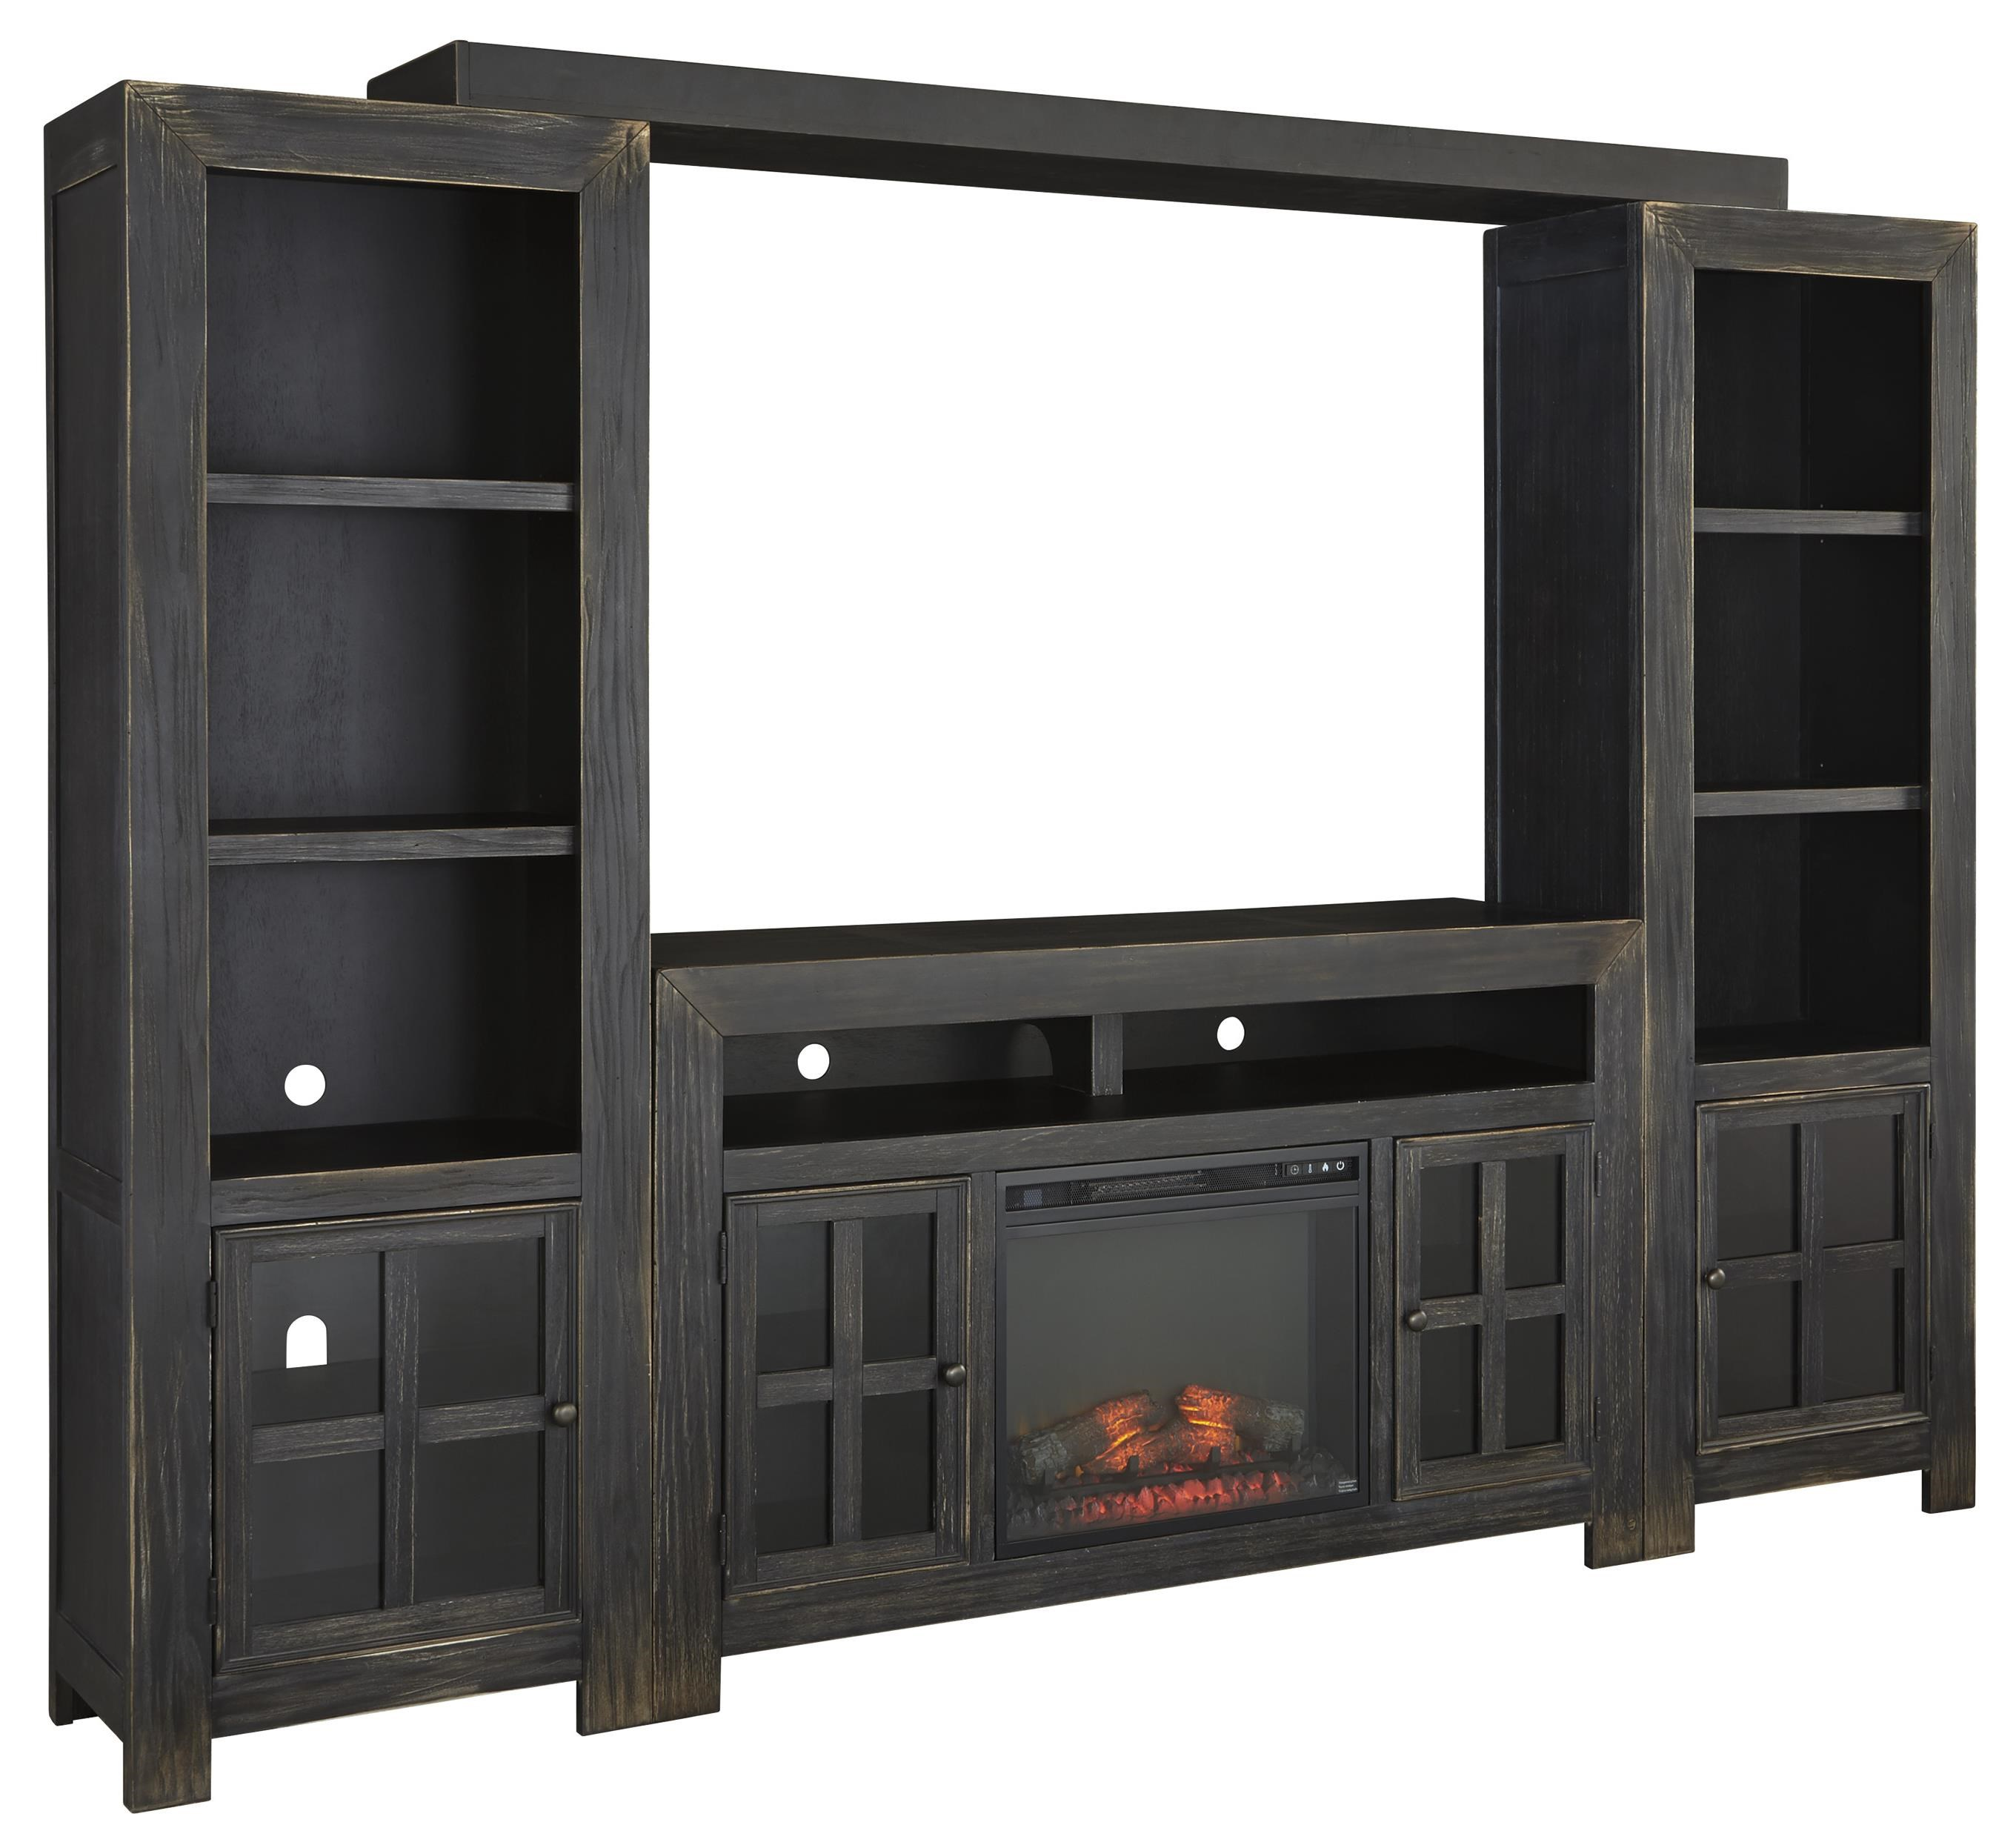 Size 1024x768 home office wall unit Bookshelf Gavelston Entertainment Wall Unit W Large Tv Stand Fireplace Bridge And Piers By Signature Design By Ashley Value City Furniture Signature Design By Ashley Gavelston Entertainment Wall Unit